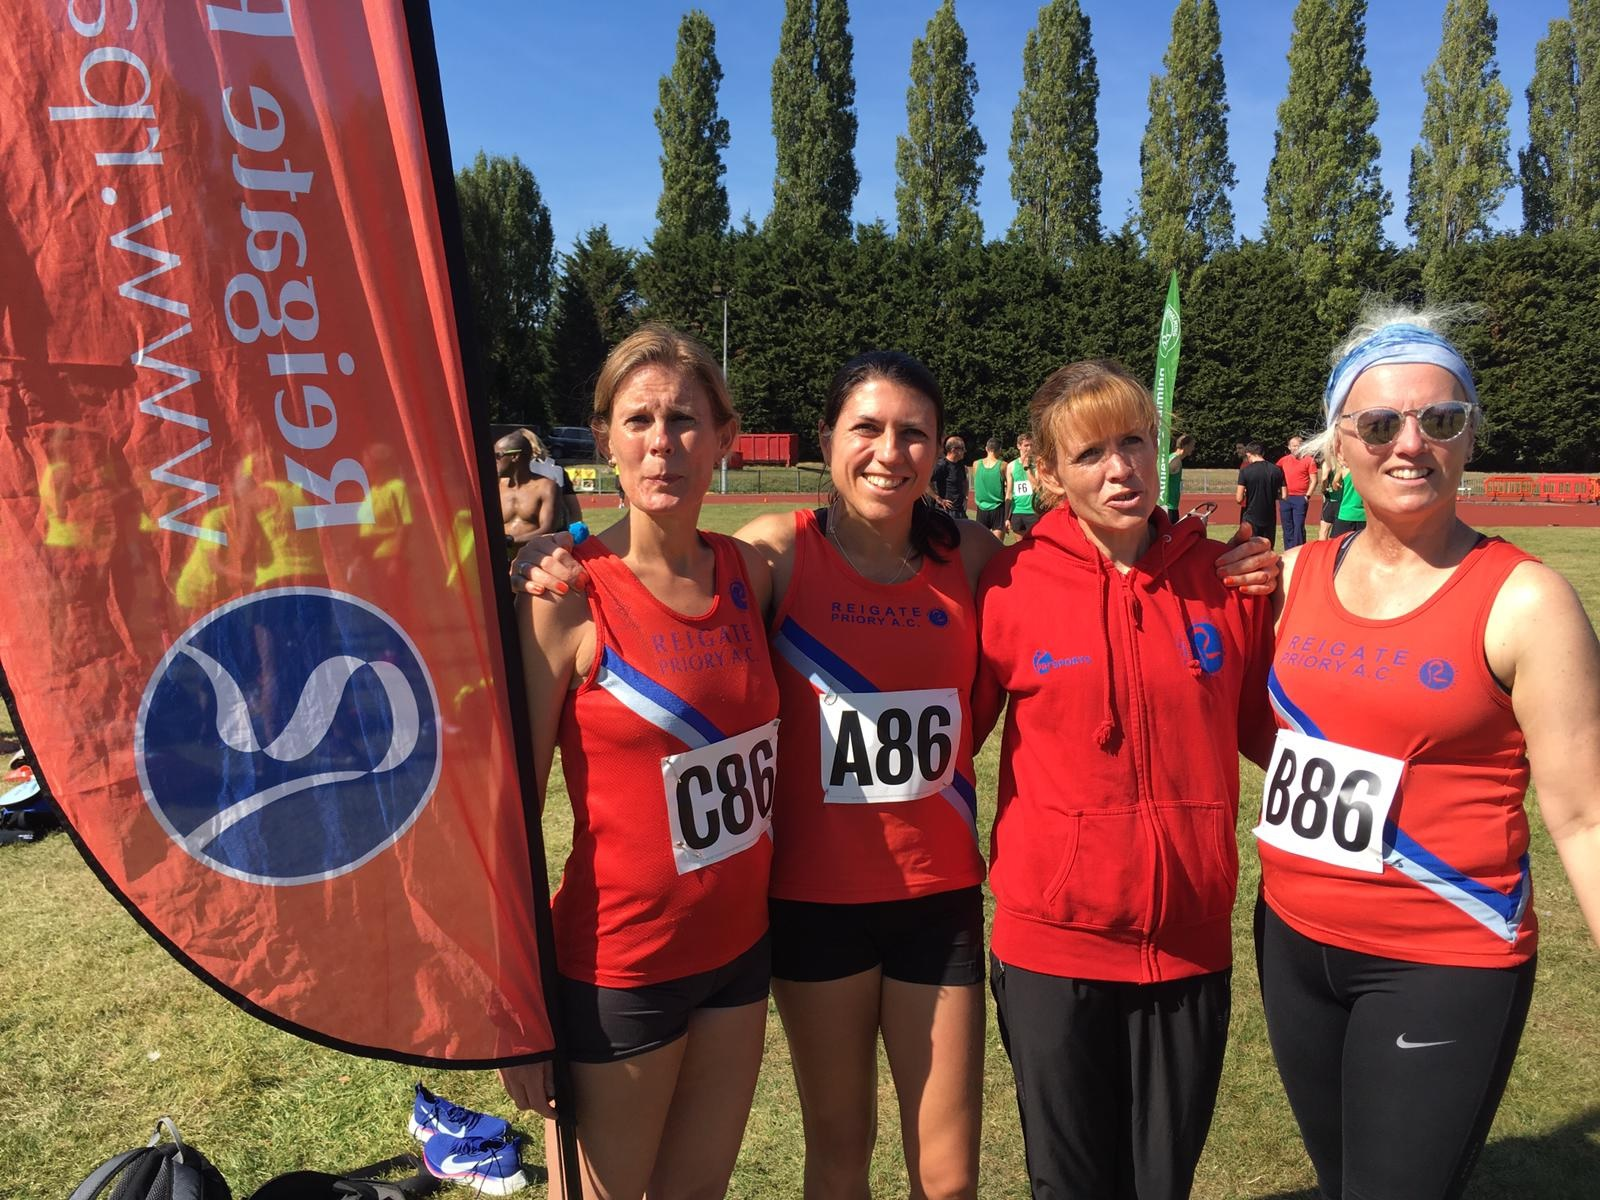 Surrey Road Relays 2019 W35 team